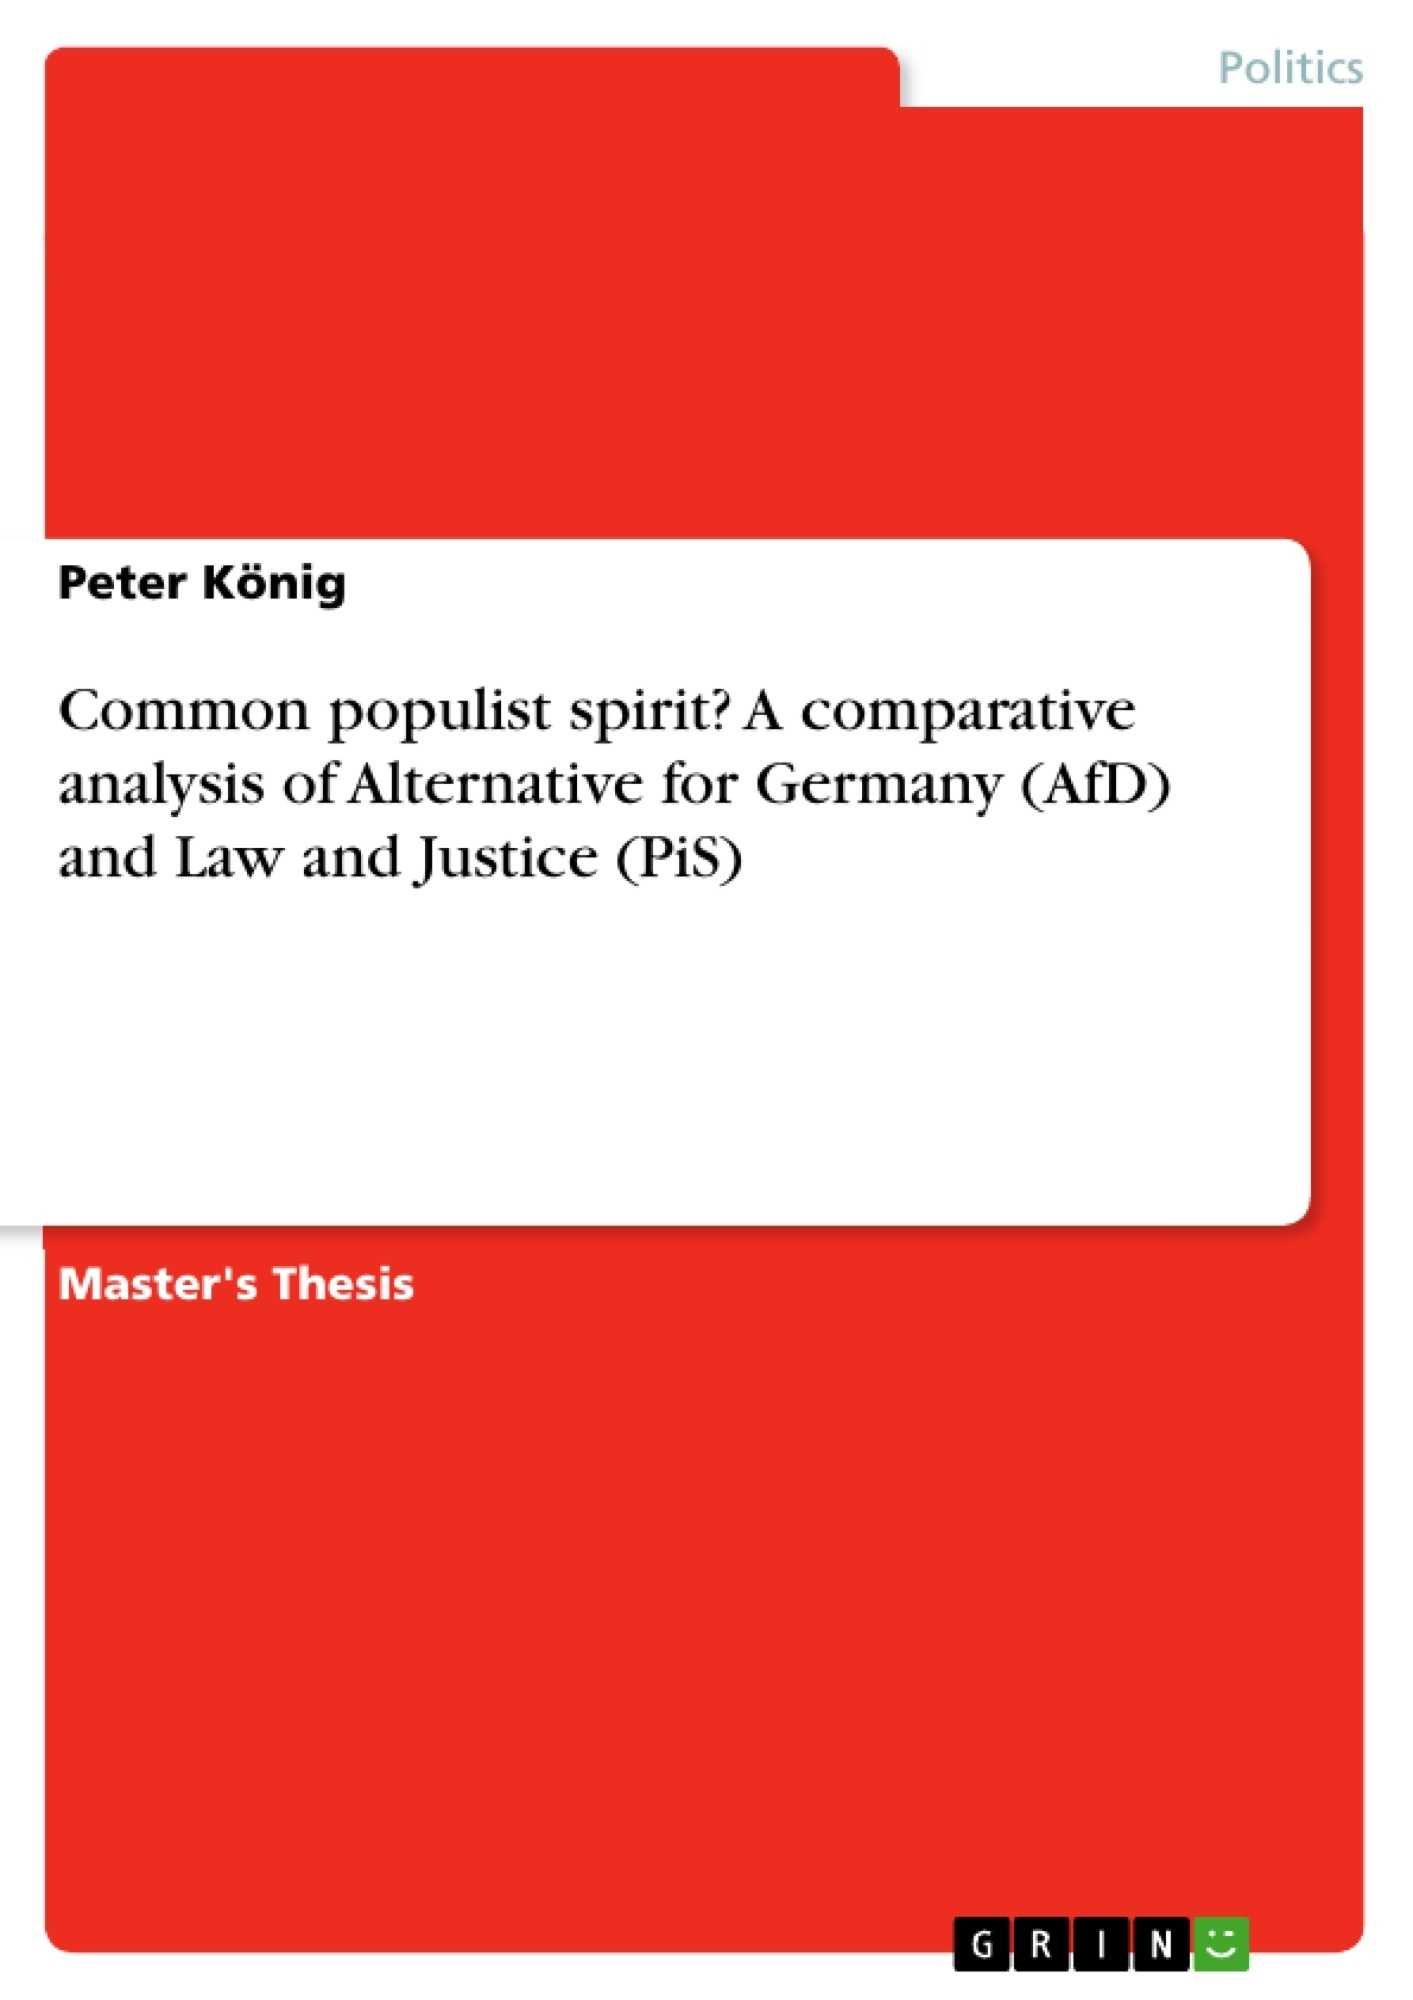 Title: Common populist spirit? A comparative analysis of Alternative for Germany (AfD) and Law and Justice (PiS)